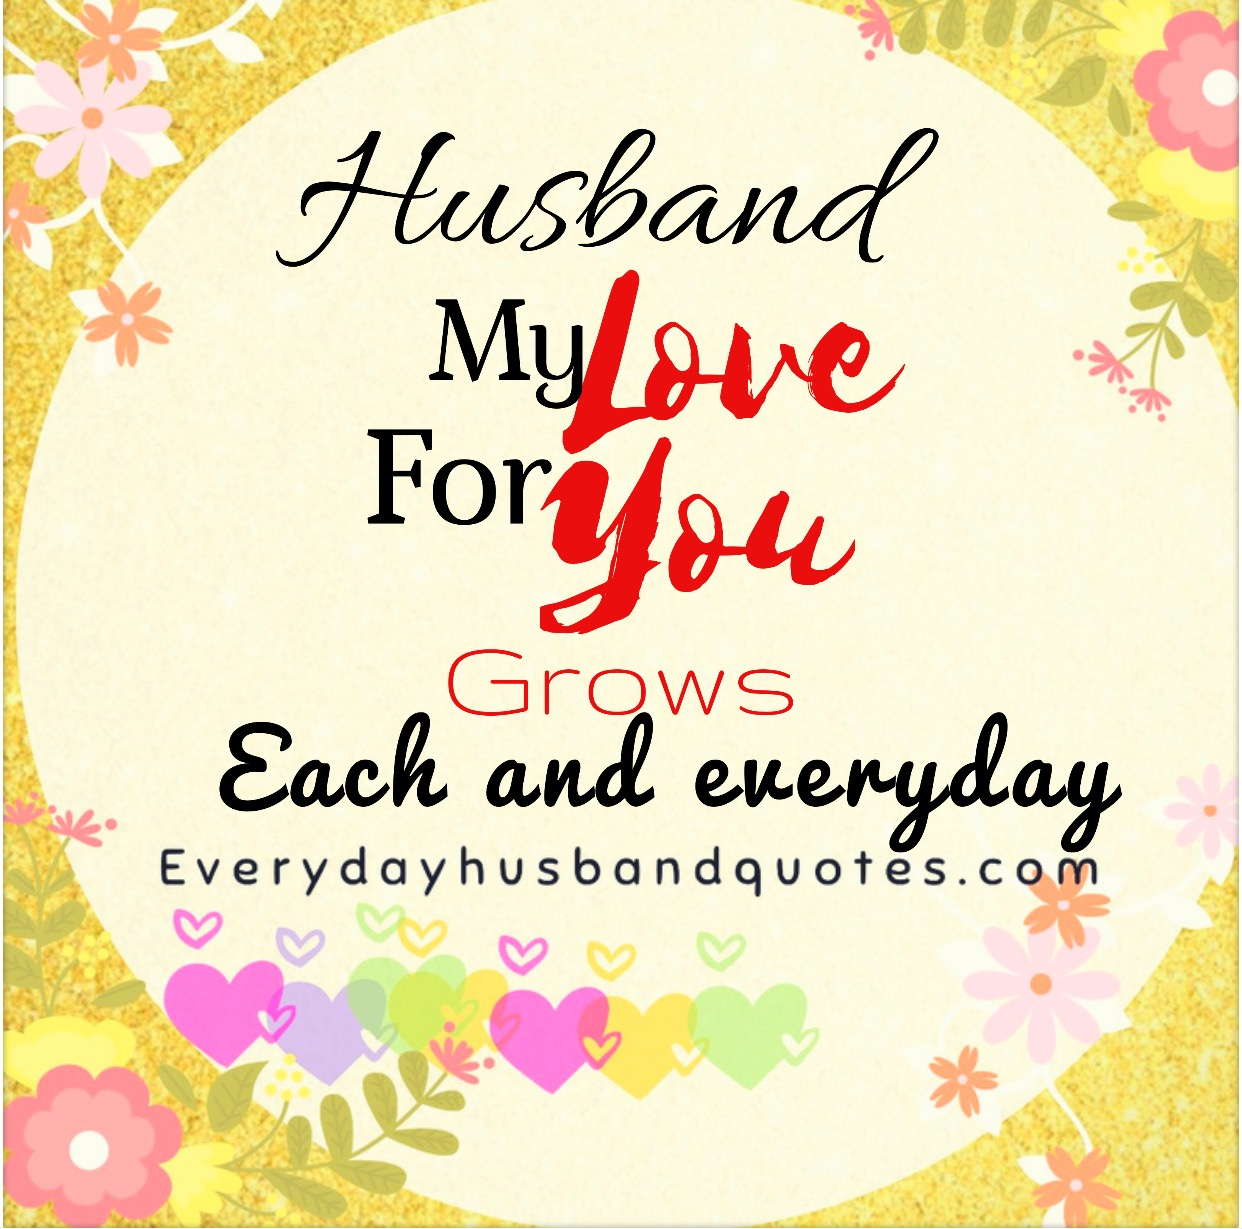 I Love My Husband Quotes Everyday Husband Quotes.yes Marriage Still Works